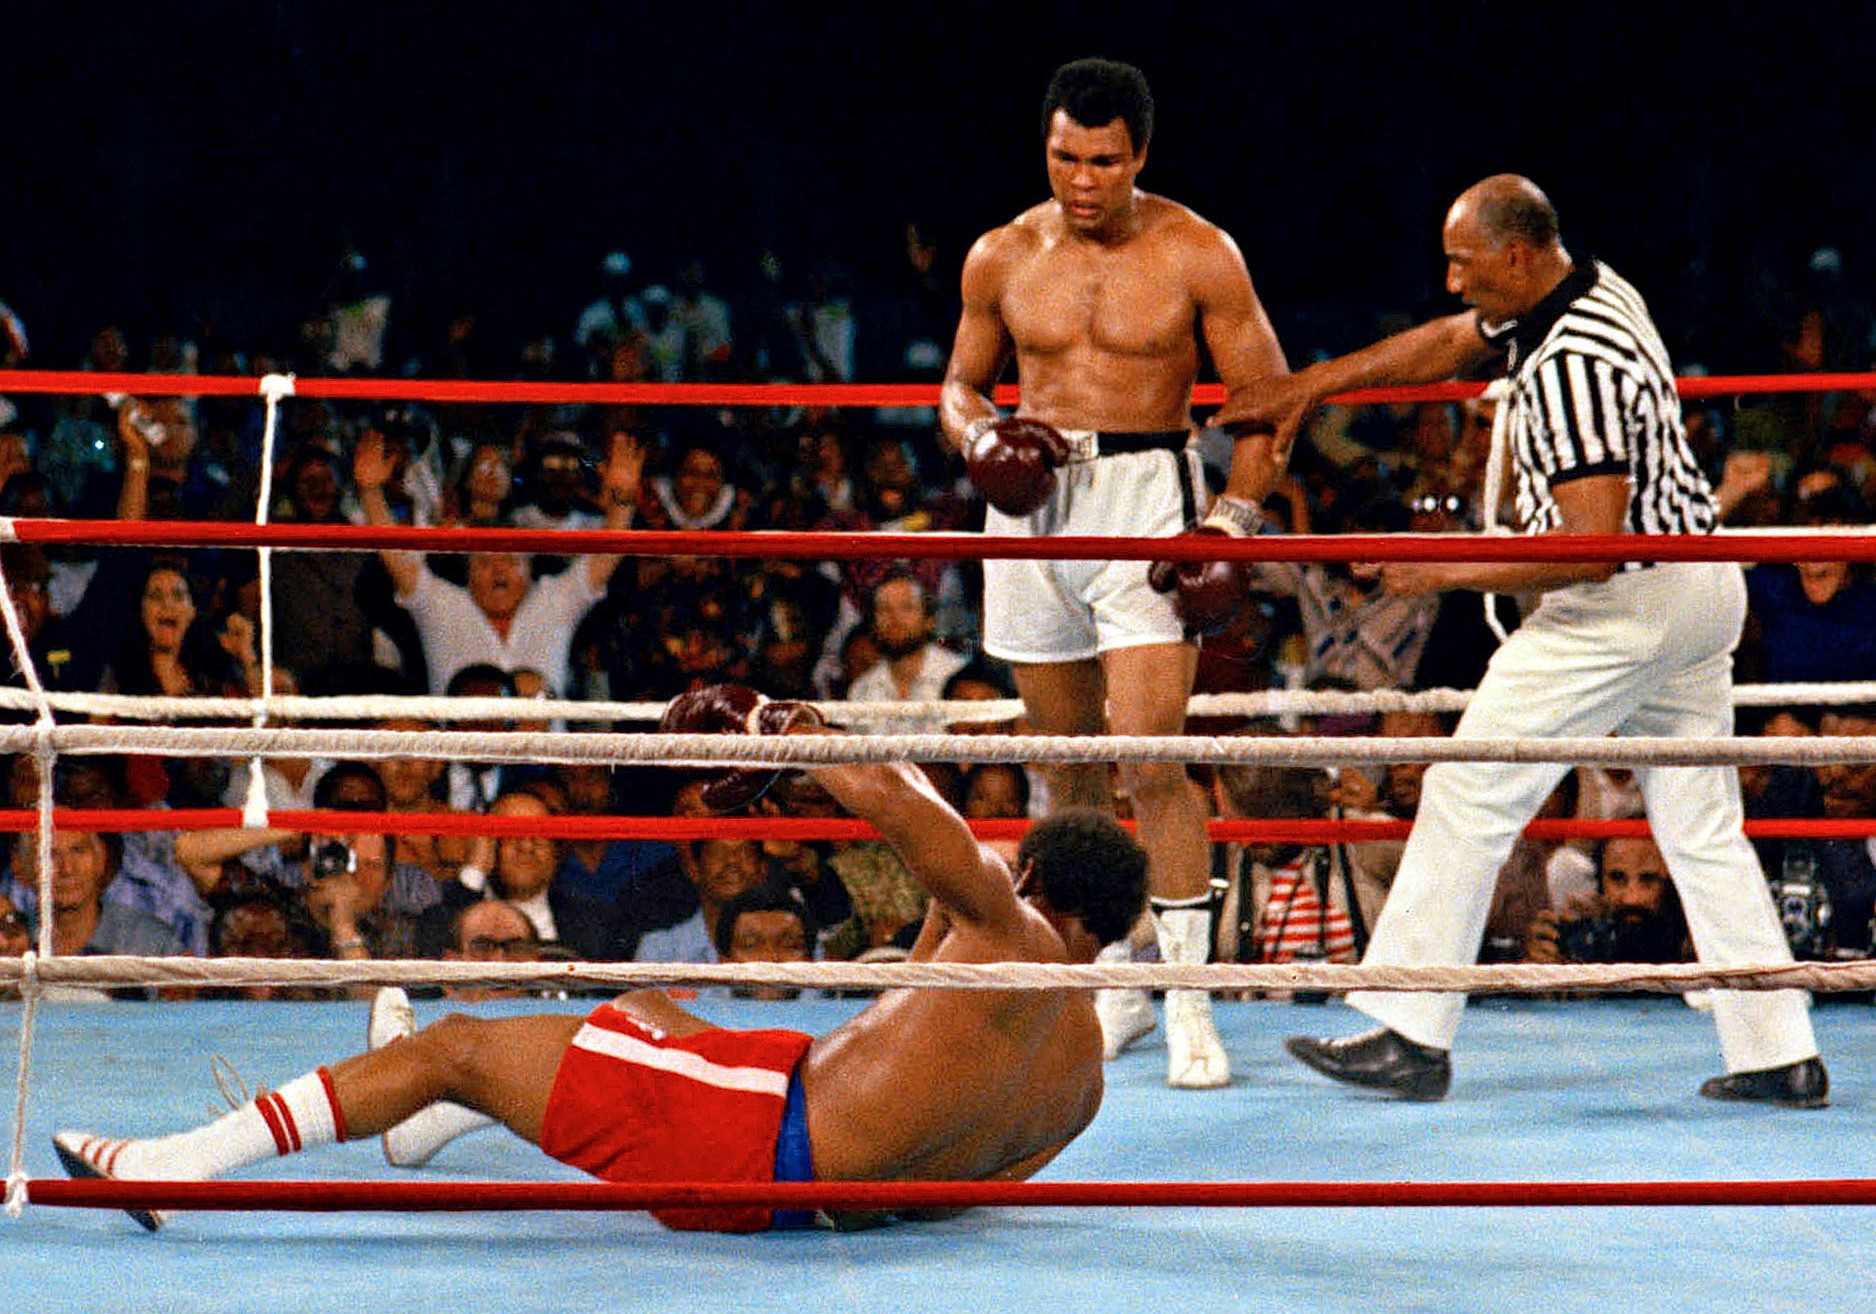 Muhammad Ali (center) watches after knocking down defending heavyweight champion George Foreman. (AP)